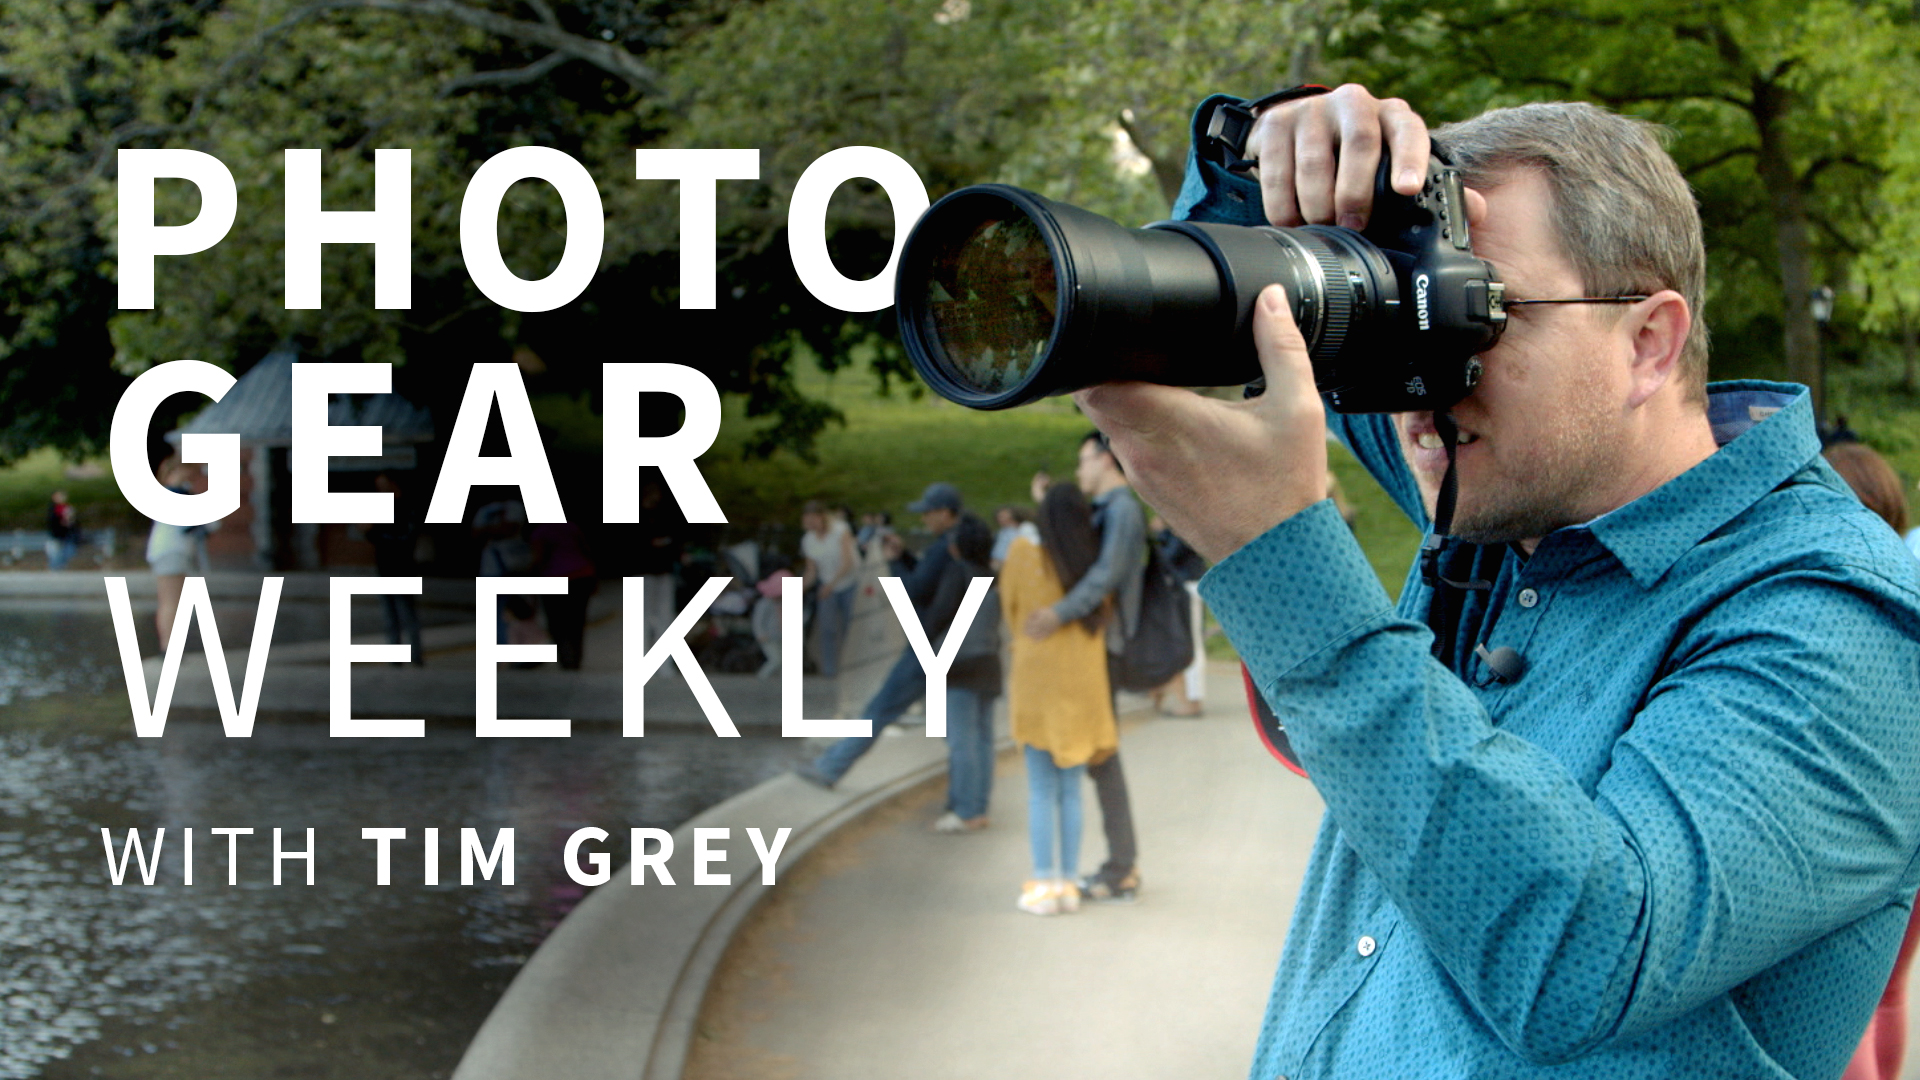 Long exposure noise reduction: Photo Gear Weekly